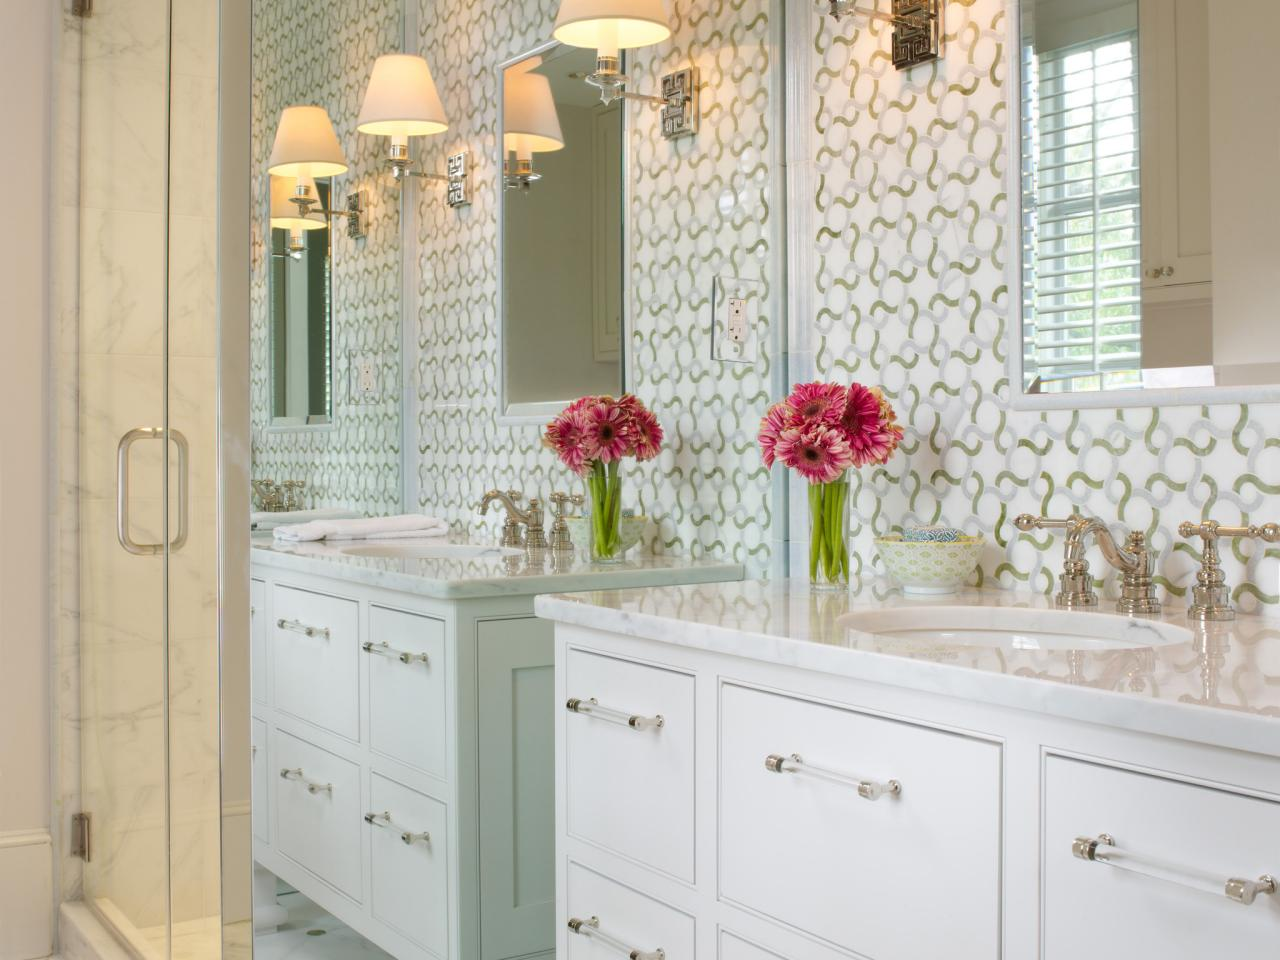 S interior design s interior design scottsdale archives interior design scottsdale az by s - Guest bathroom remodel designs ...